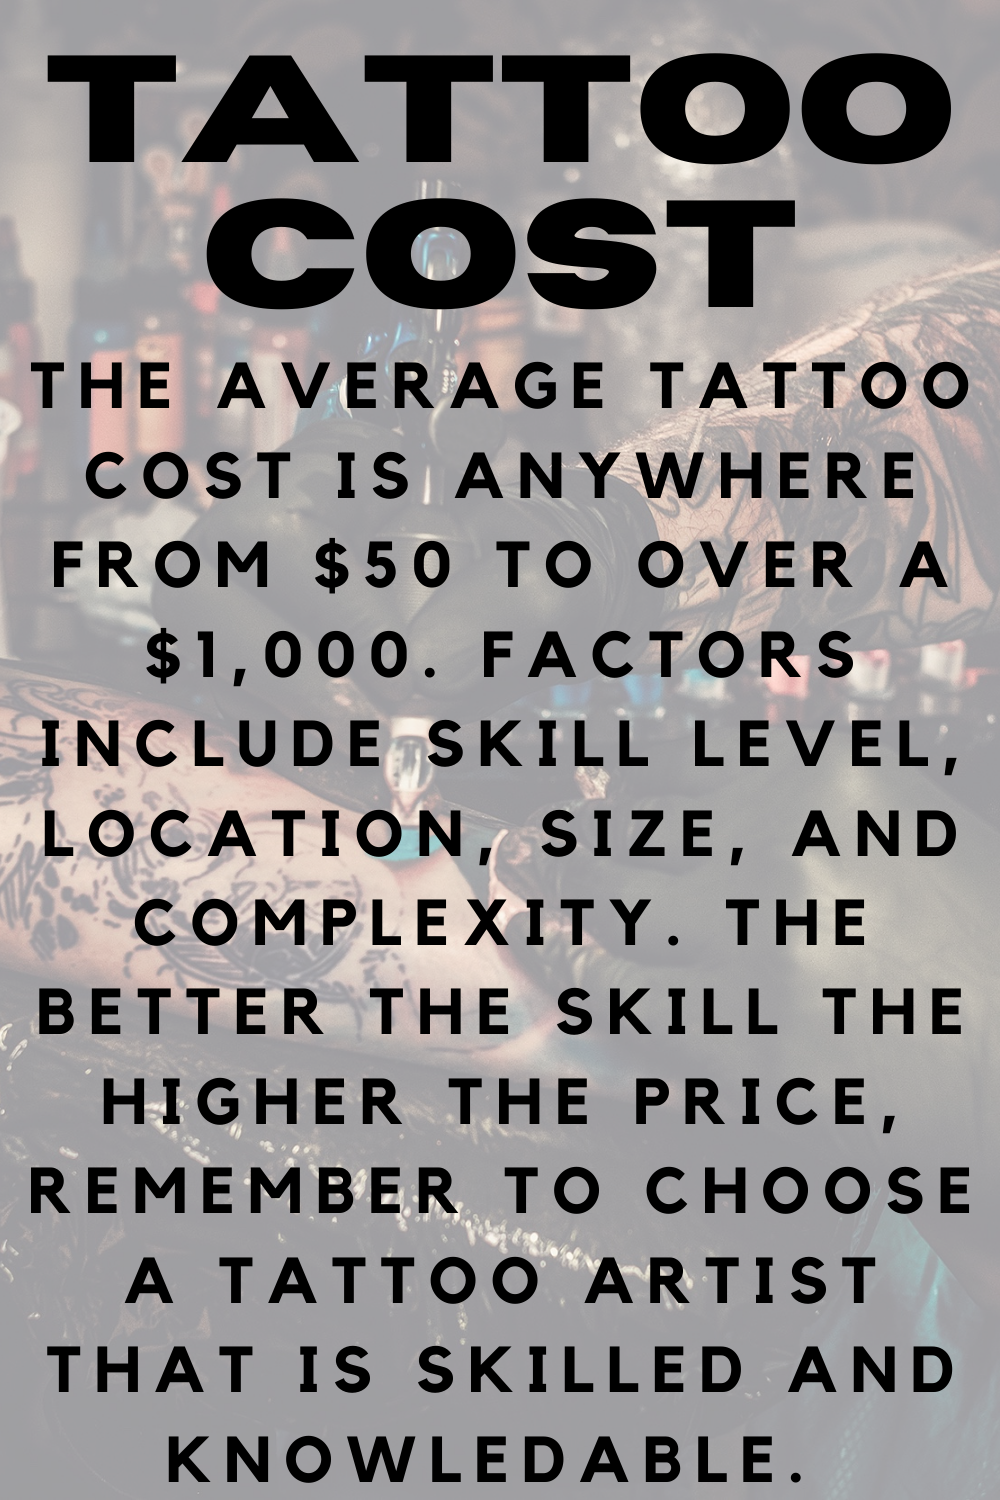 What Is The Average Tattoo Cost